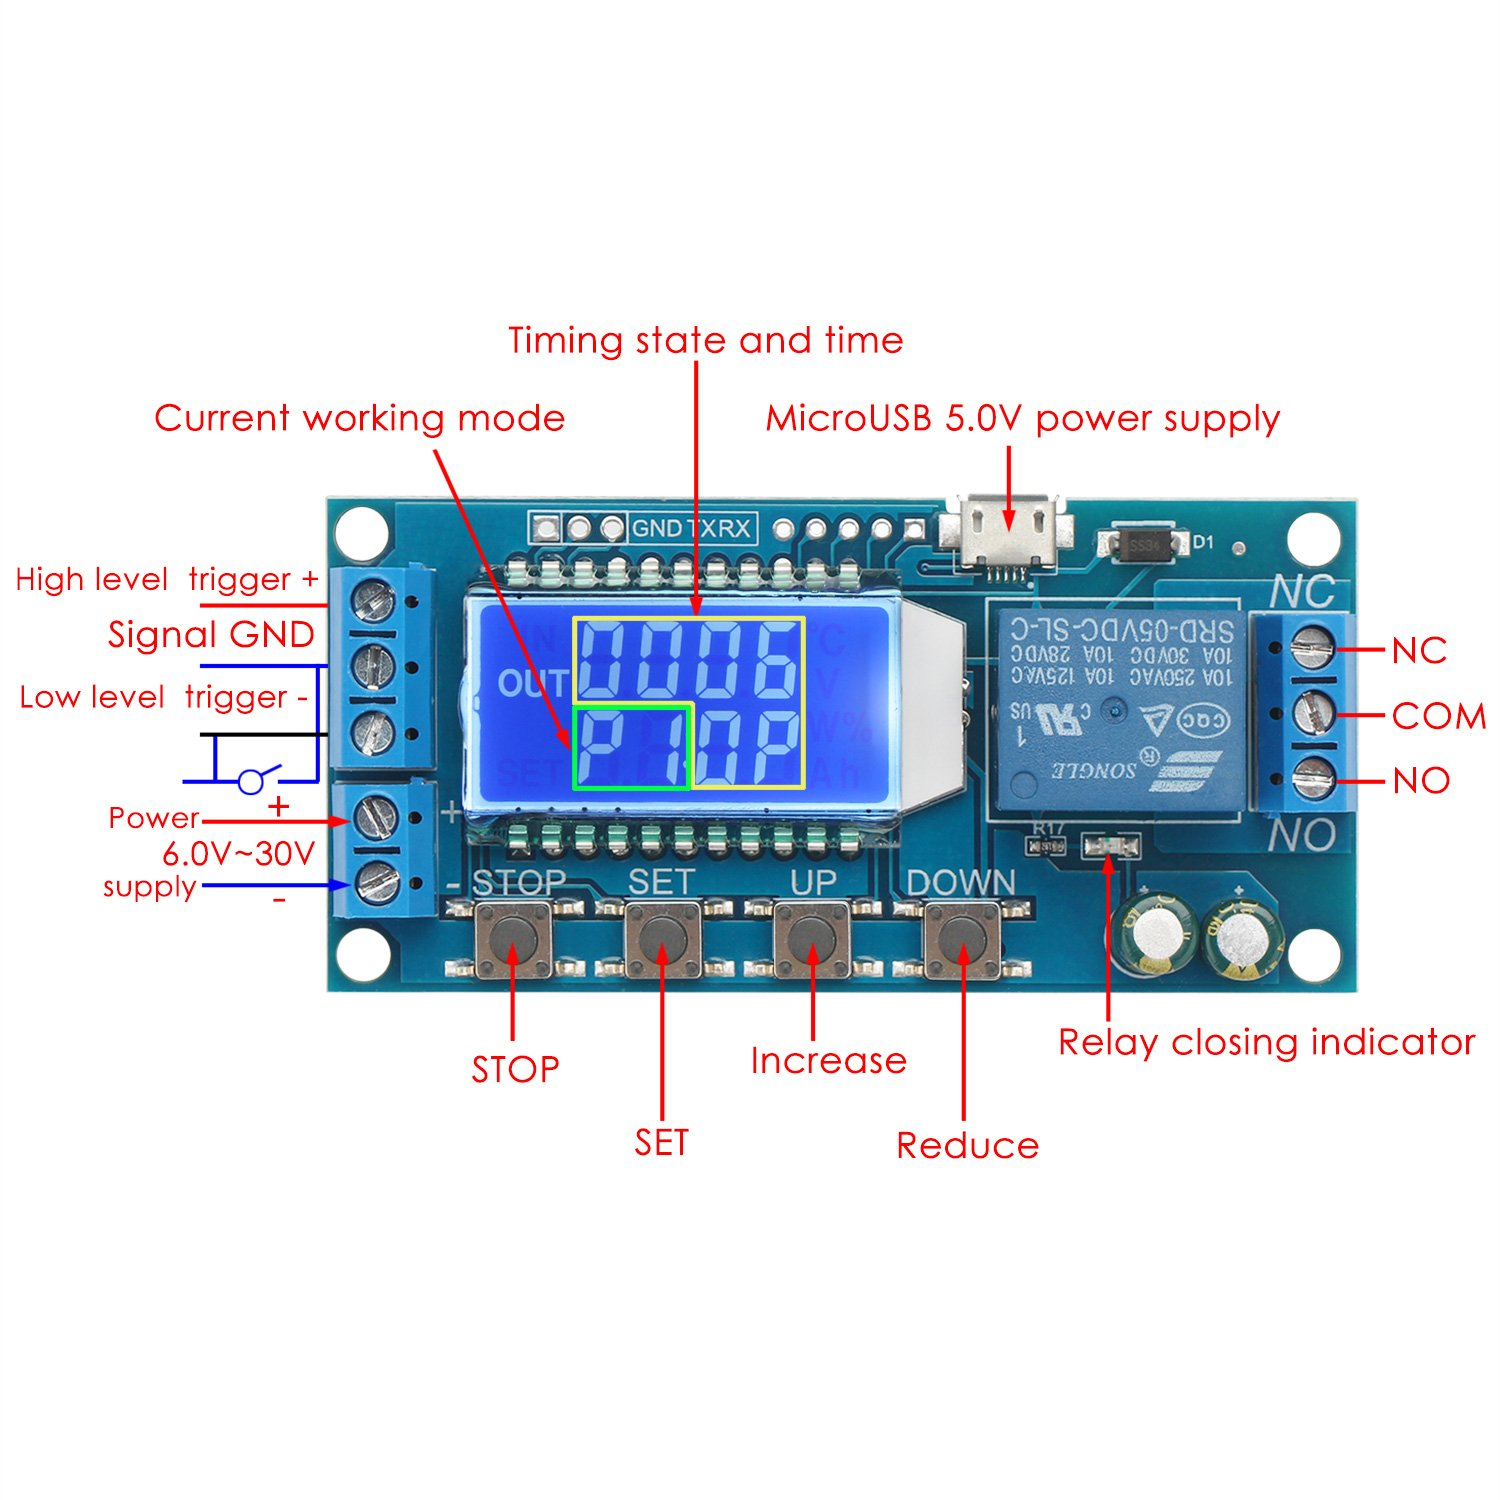 Time Delay Relay Drok 5v 12v 24v Controller Board Off Switch Circuit Module W Vehicle Electrical Cycle Timer 001s 9999mins Trigger Switching With Lcd Display Support